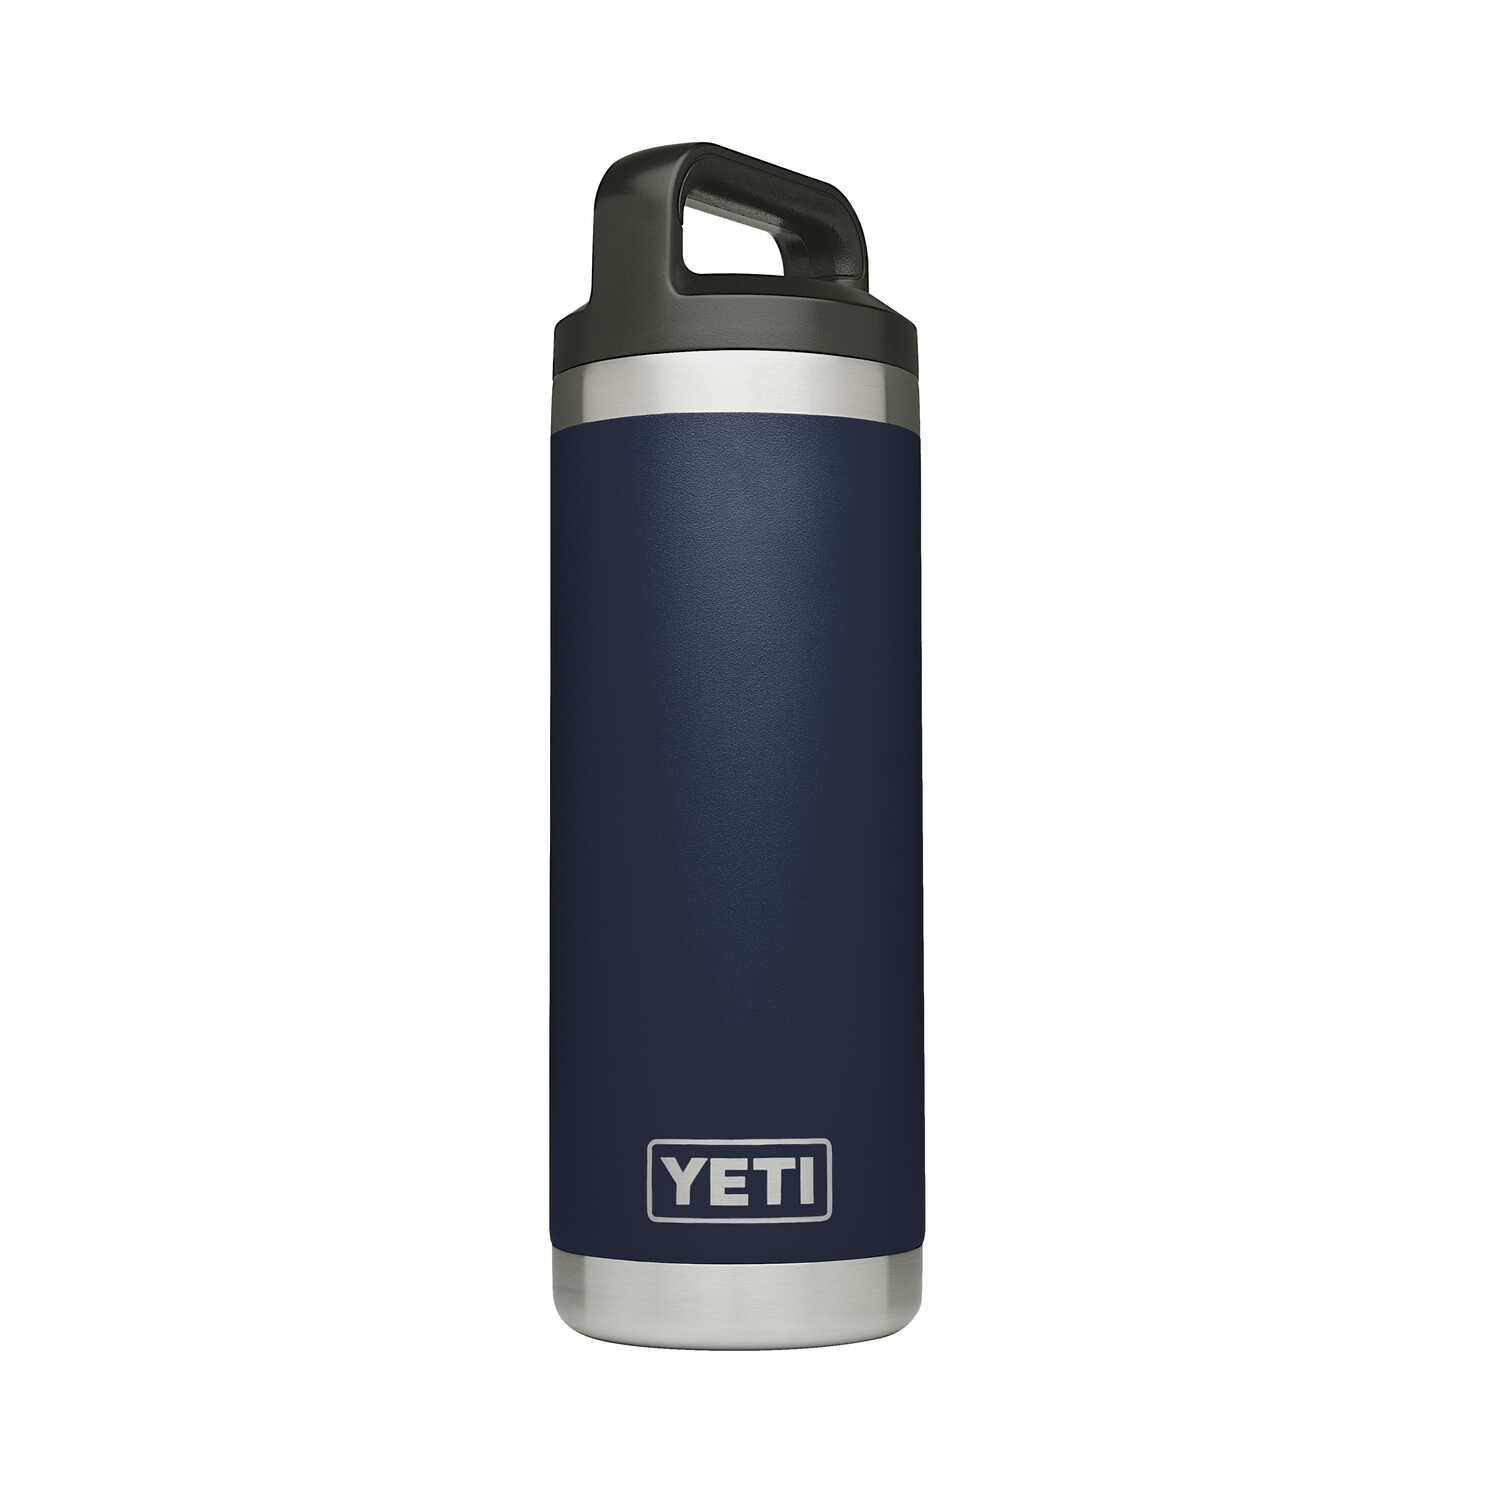 YETI  Rambler  Navy  Stainless Steel  Insulated Bottle  BPA Free 18 oz.